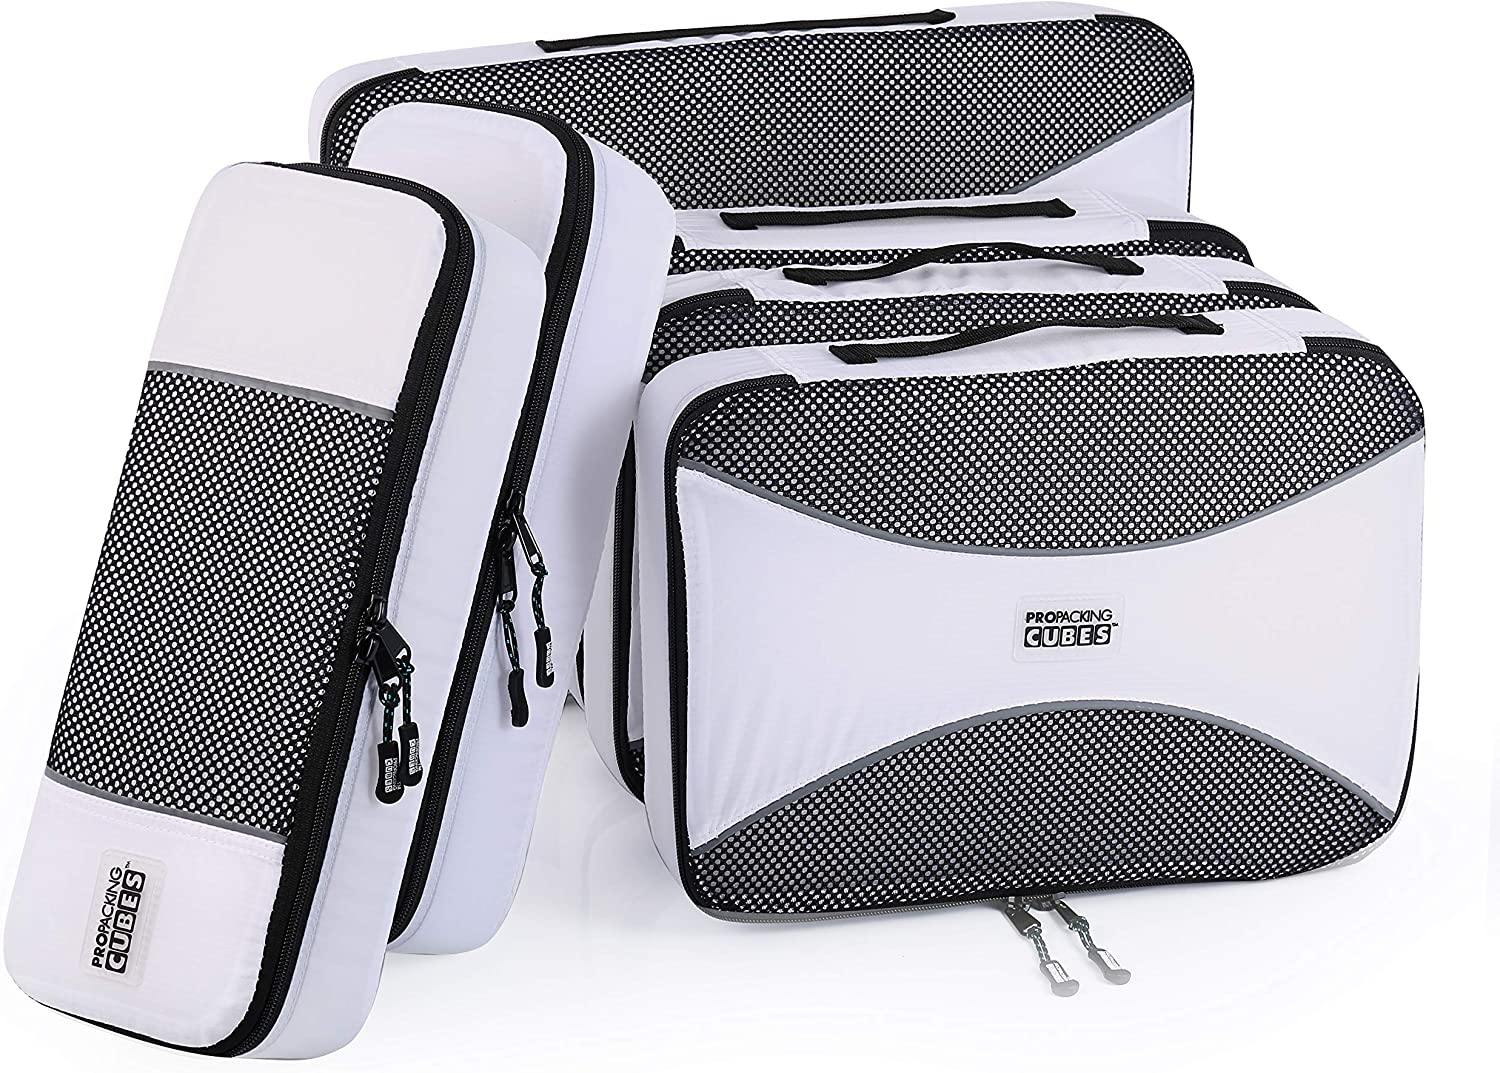 PRO Packing Cubes | Travel Bags Organizer for Luggage | Multi-size Ultralight Travel Cubes | Suitcase Organizer Bags Set 6 Piece | Makes Packing Easy - White